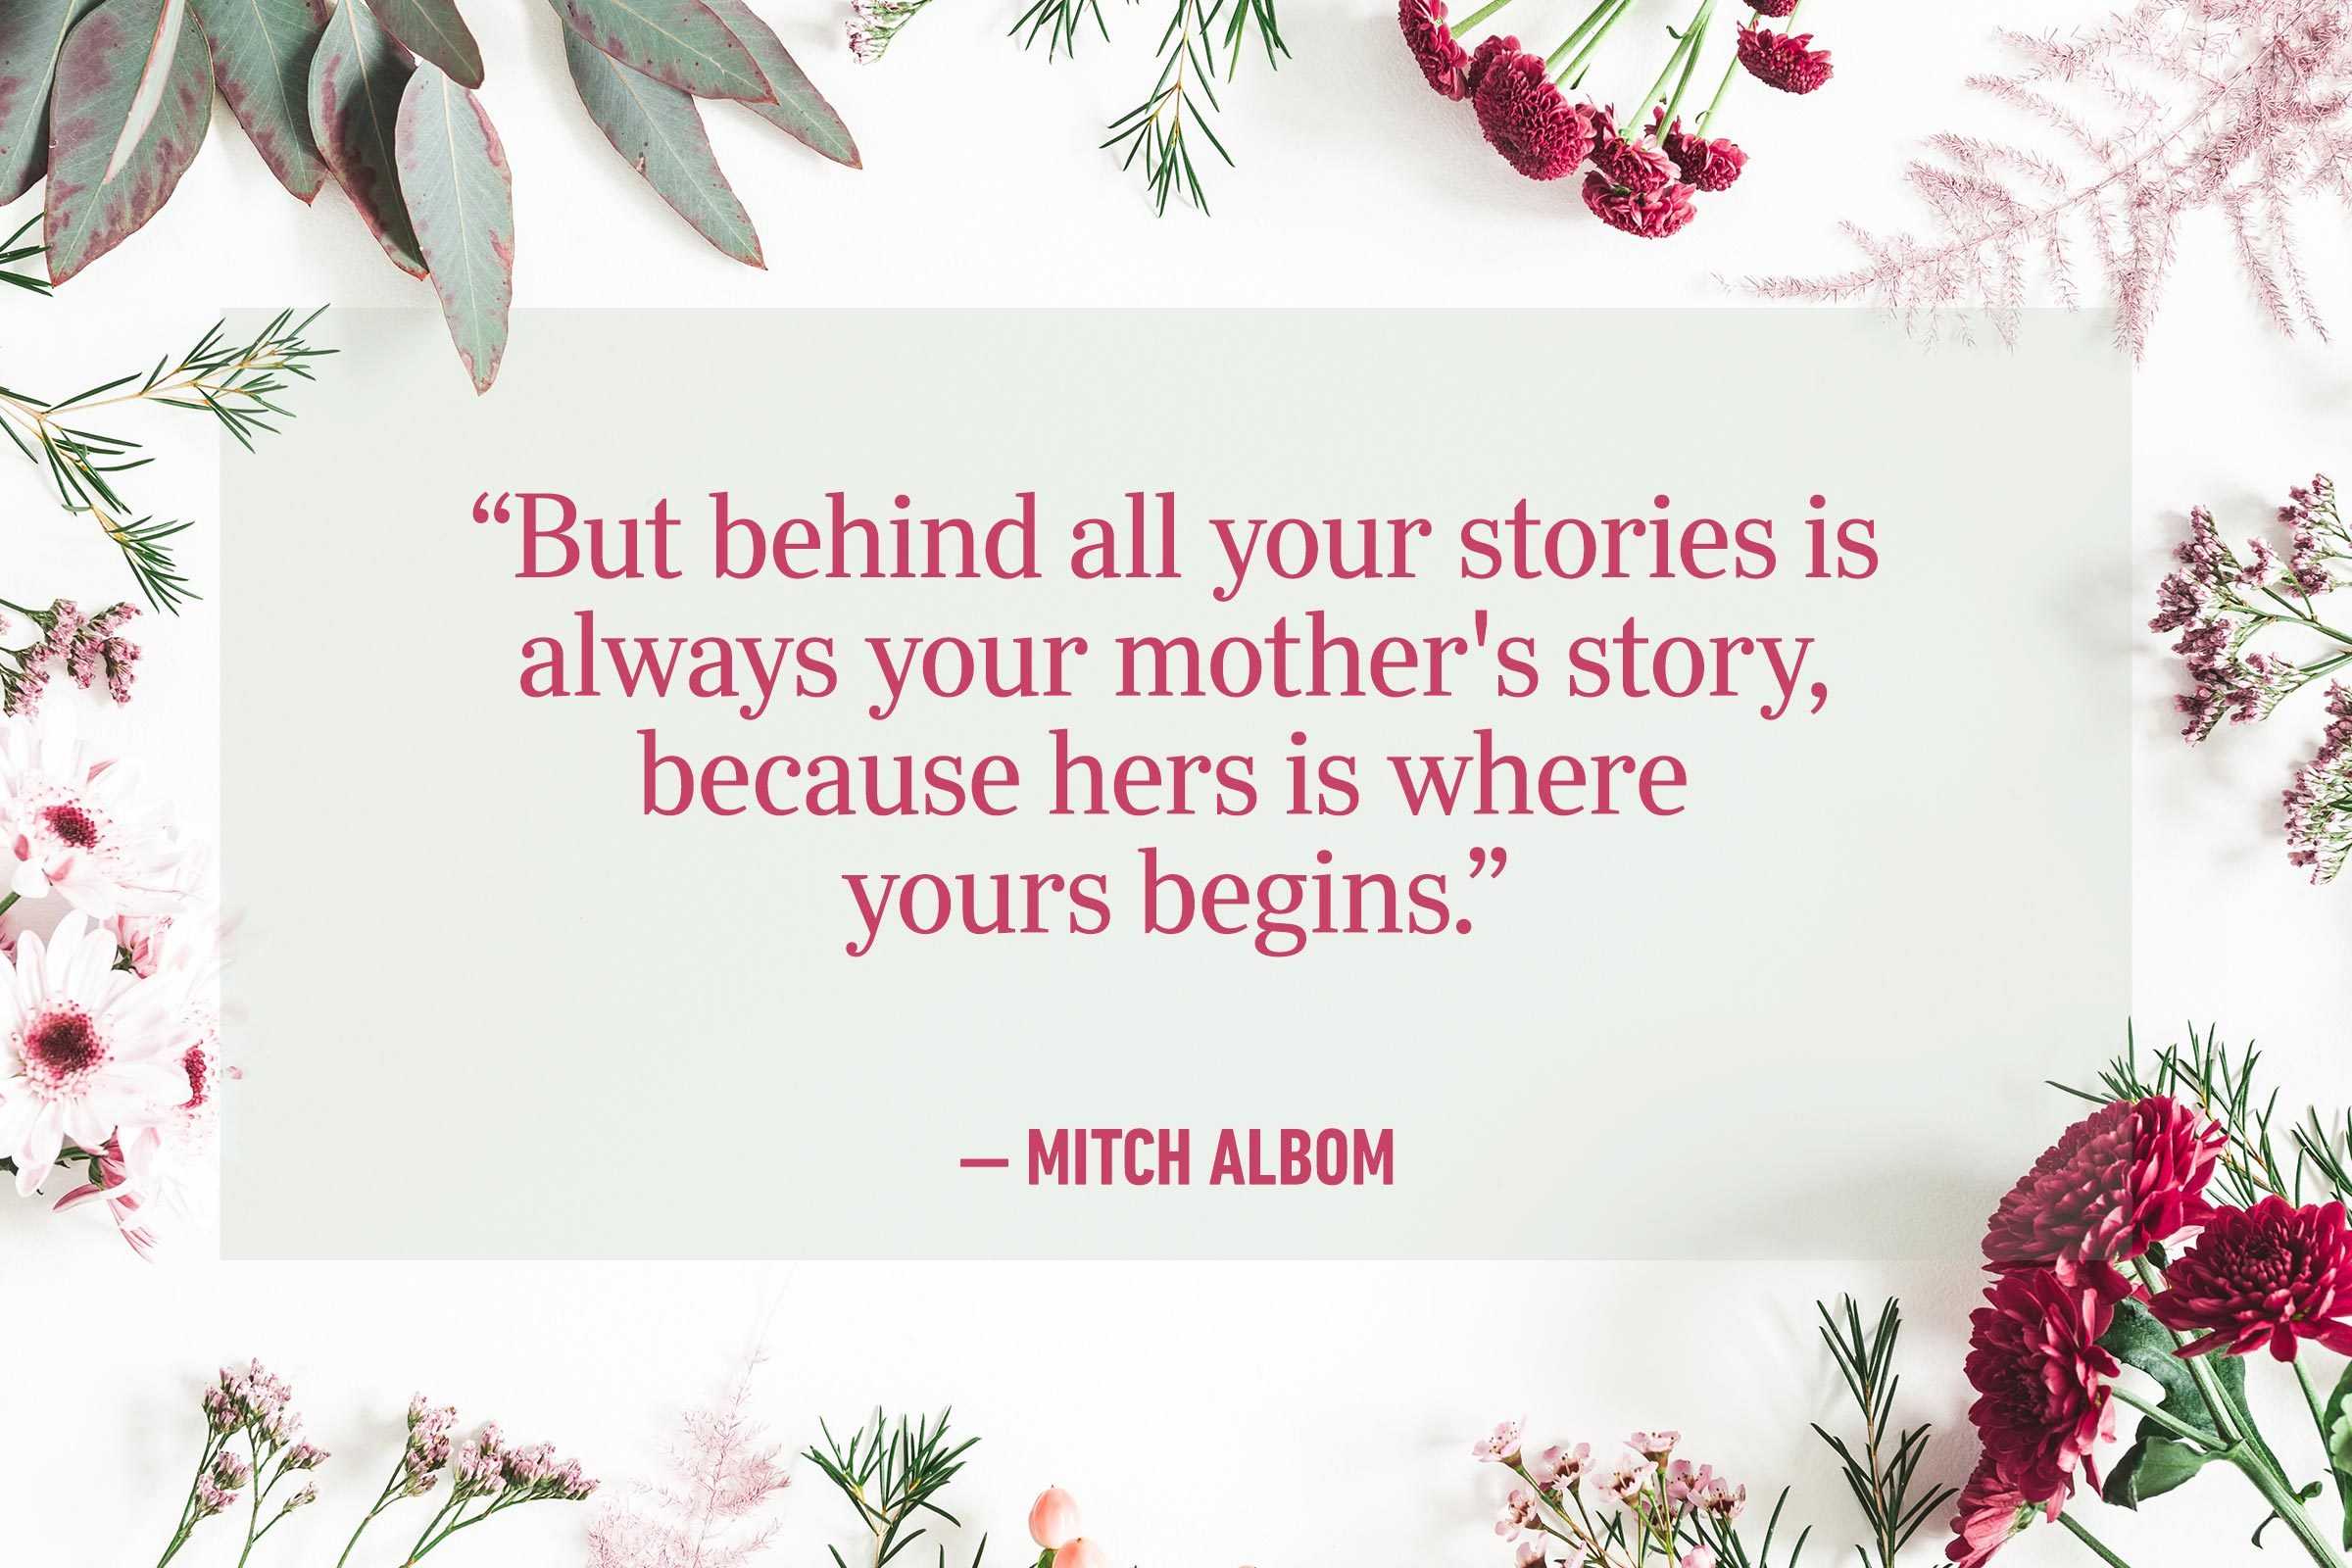 """""""But behind all your stories is always your mother's story, because hers is where yours begins."""" —Mitch Albom"""